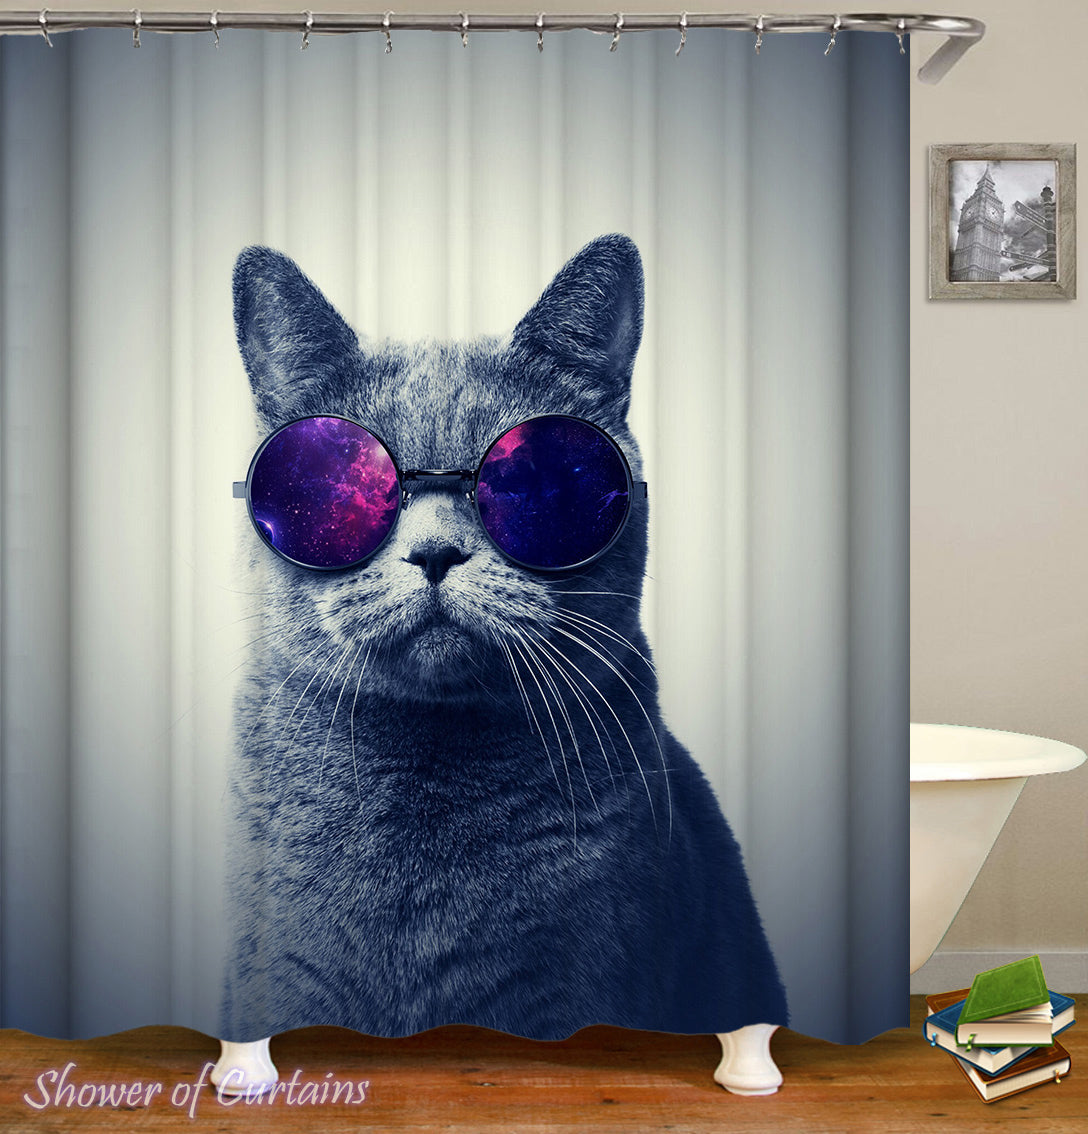 Cat Shower Curtains Of Space Glasses 2